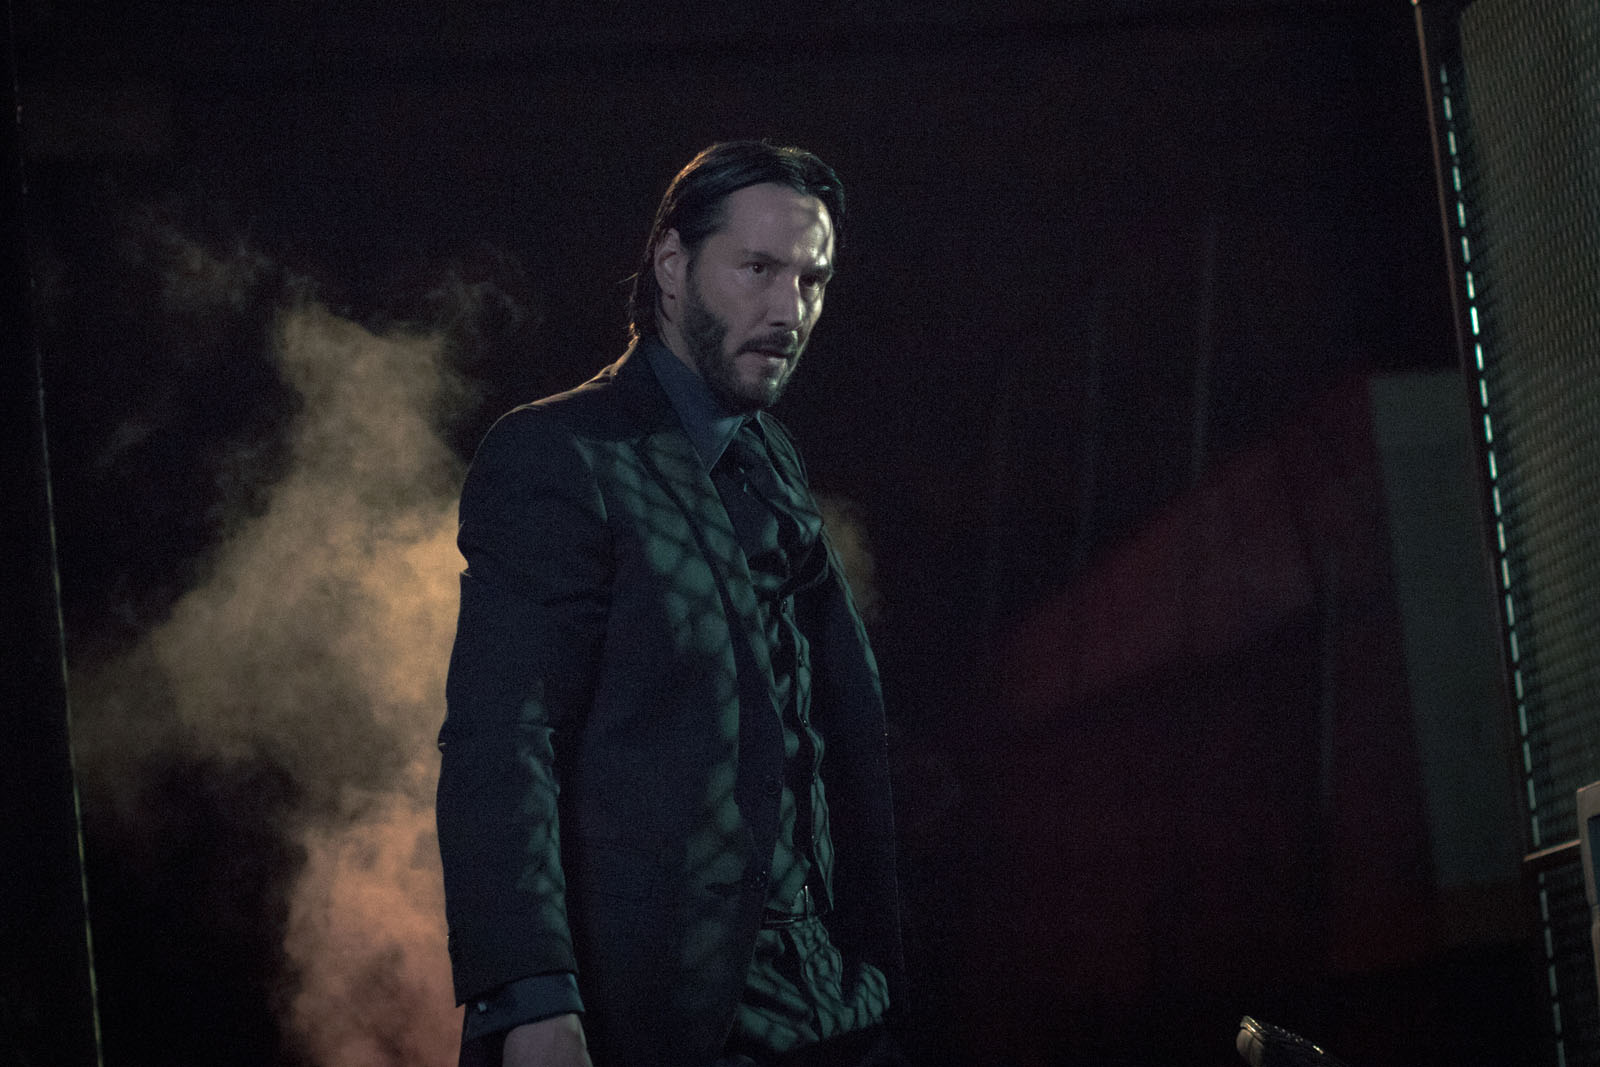 New John Wick Chapter 2 Photos Featuring Keanu Reeves